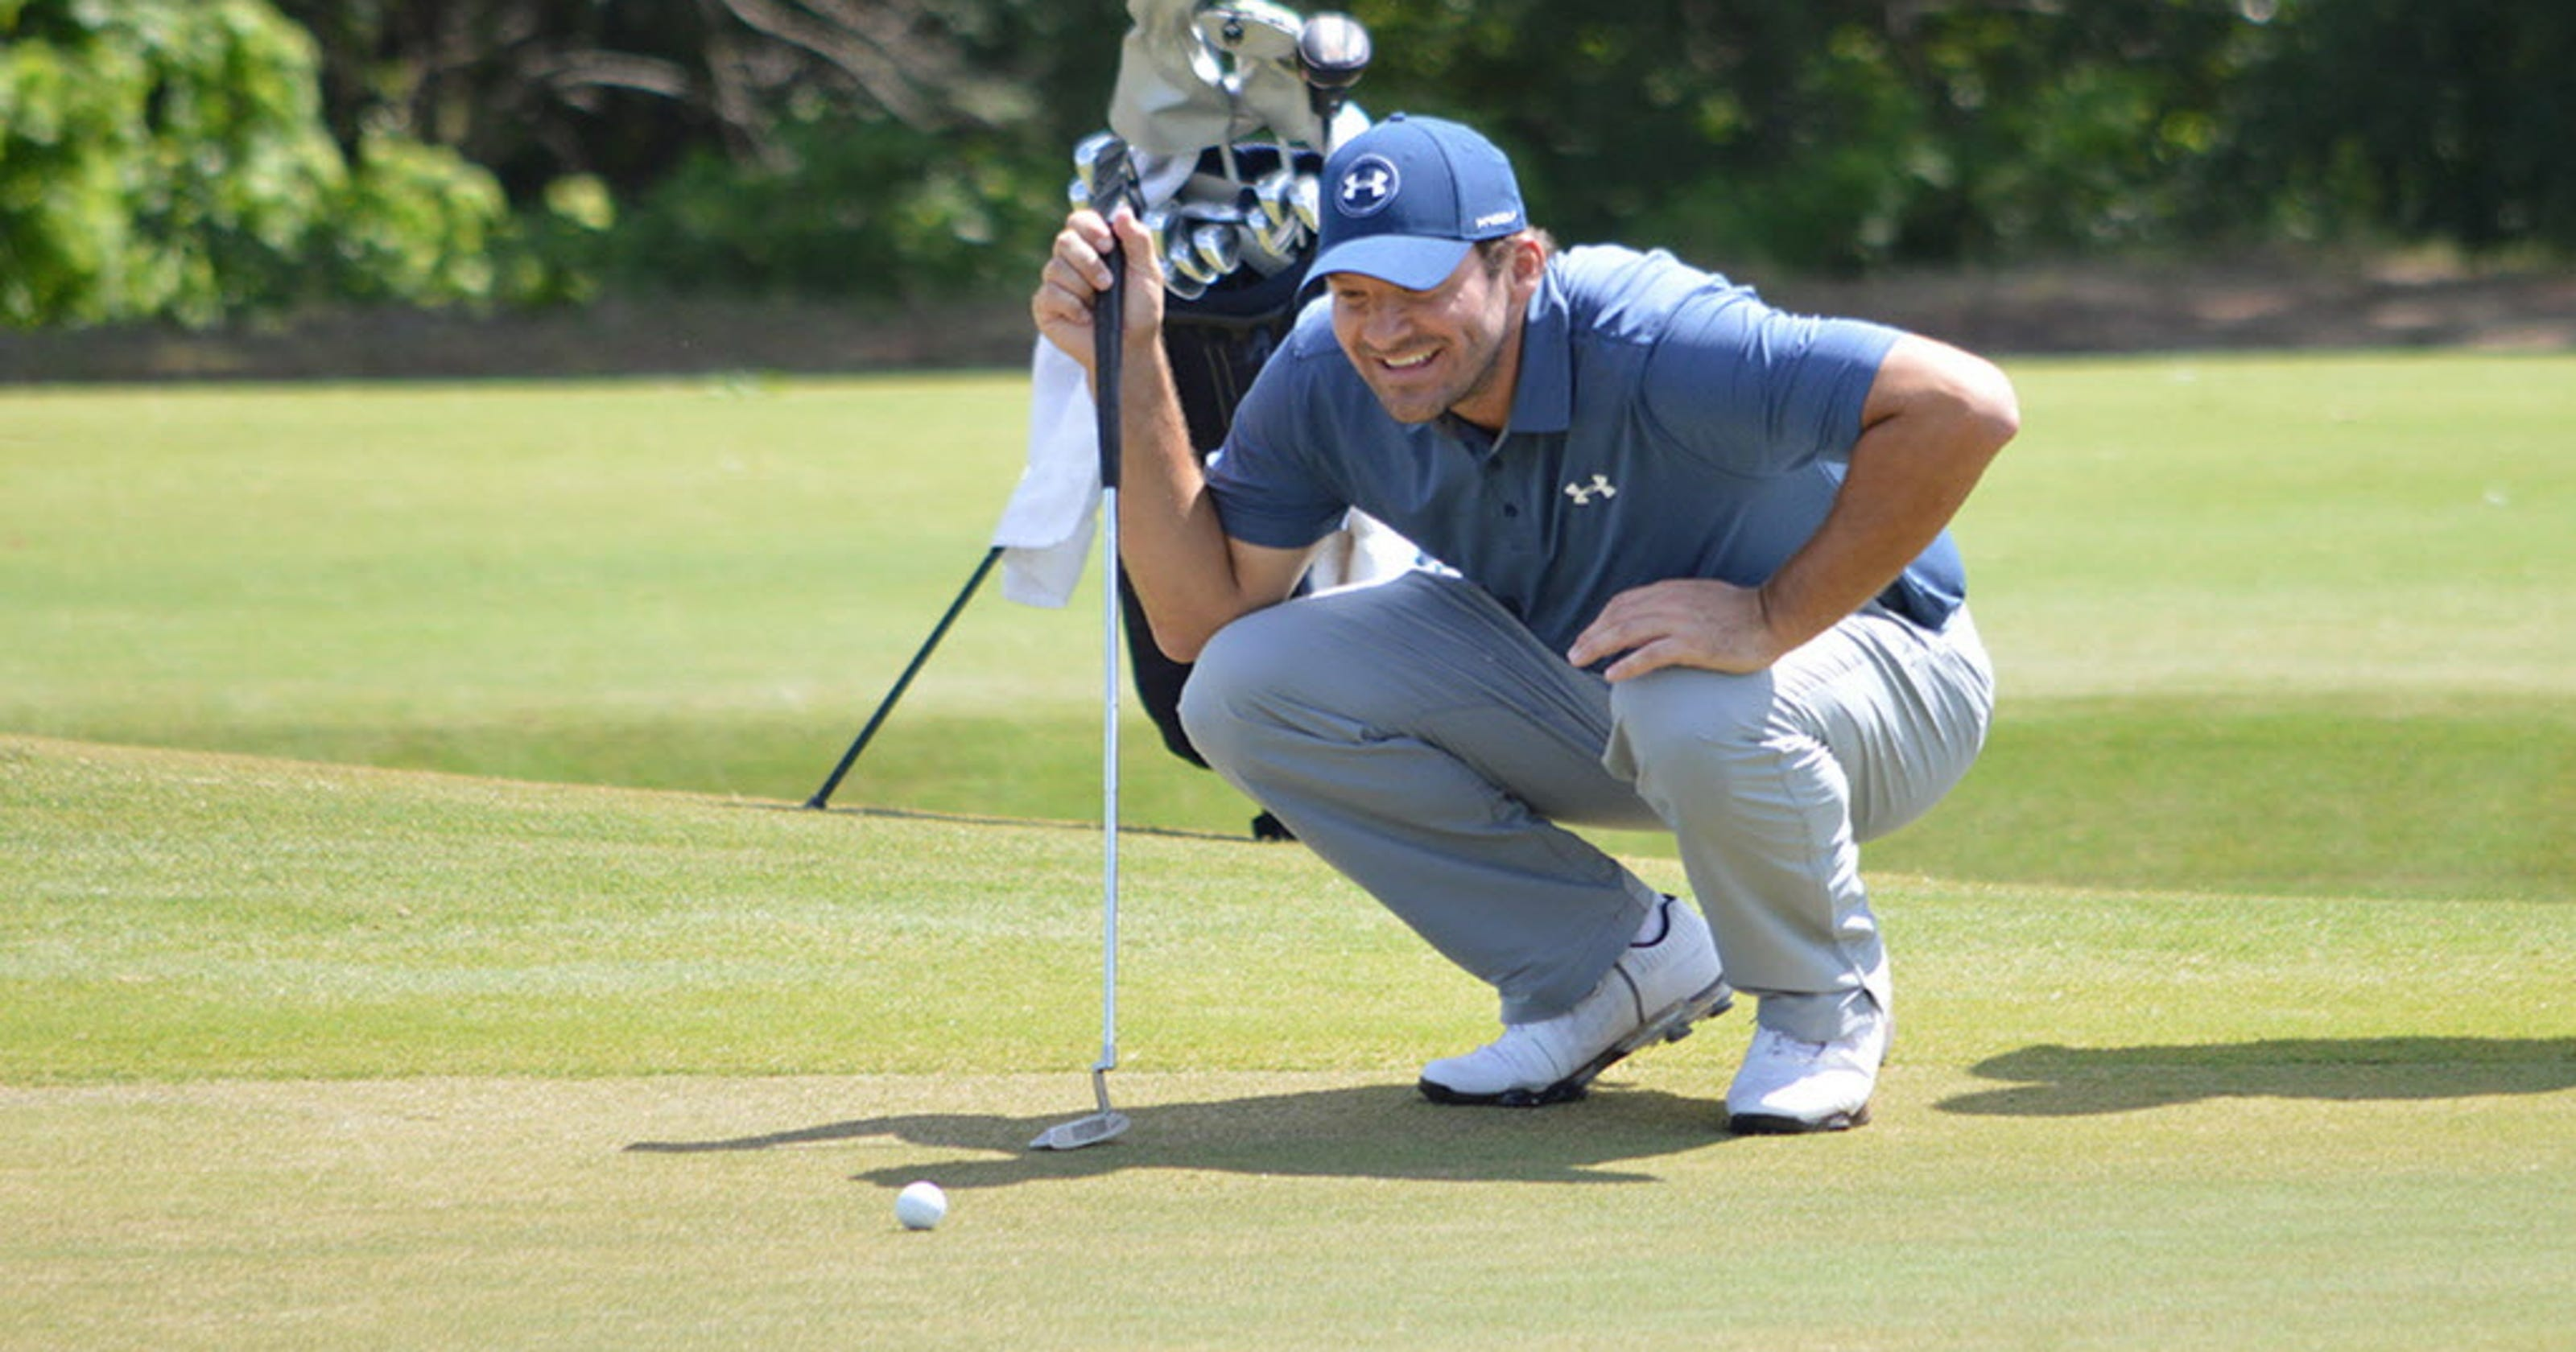 e105aa4e2bf Tony Romo to play PGA Tour event in the Dominican Republic